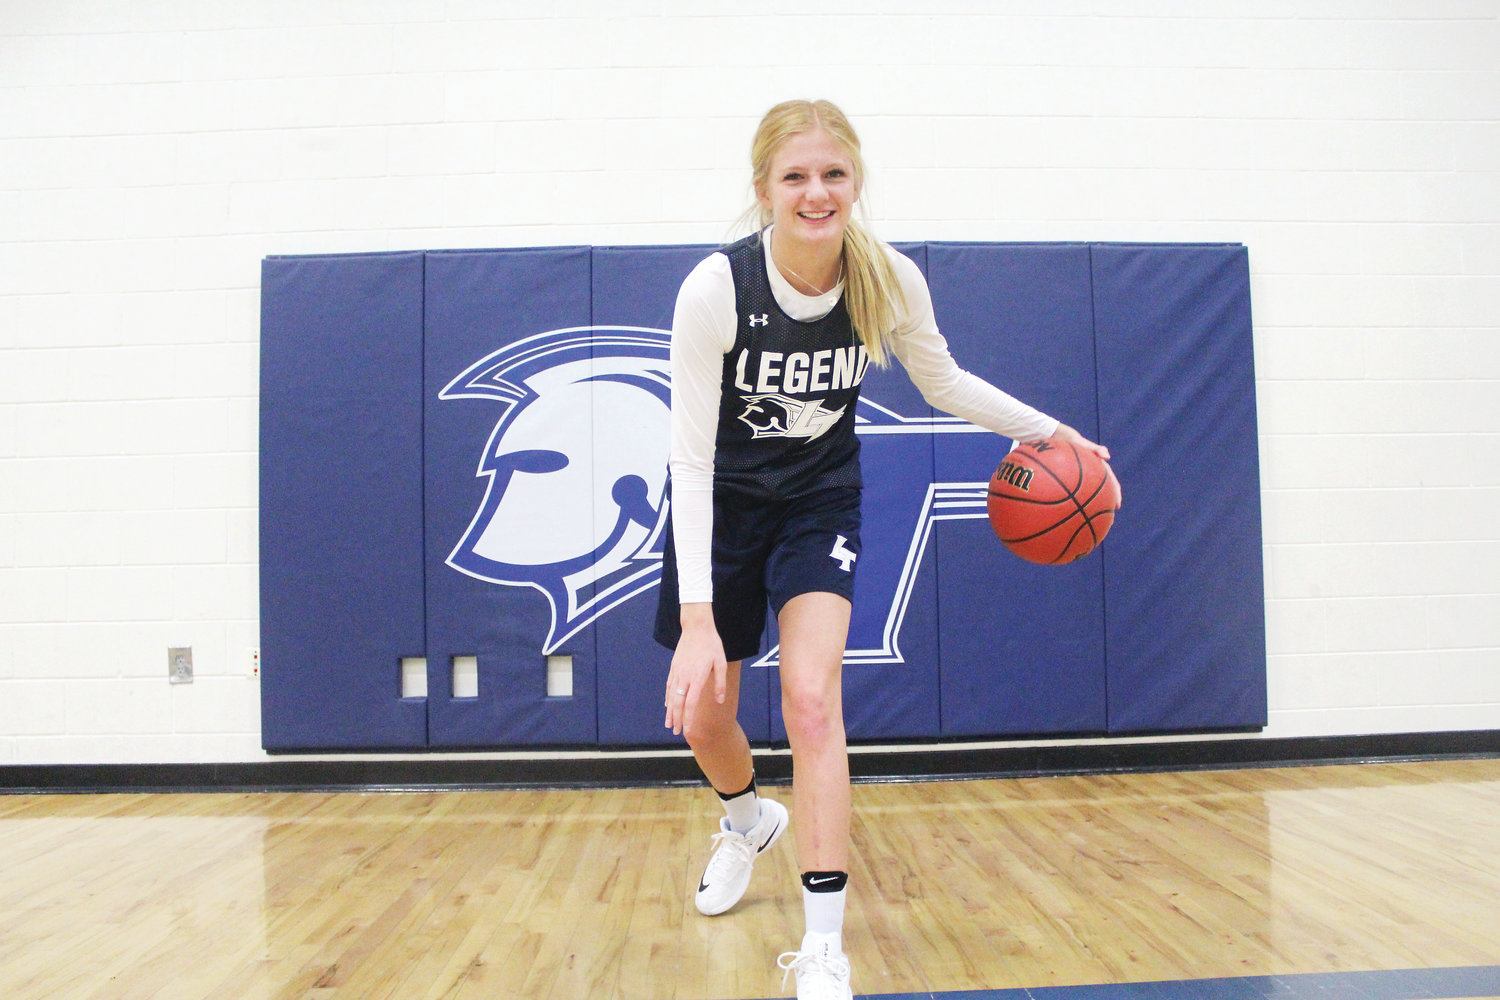 Elle Bevis, senior forward at Legend High School, leads the 9-1 Titans in points (12.8 points per game).